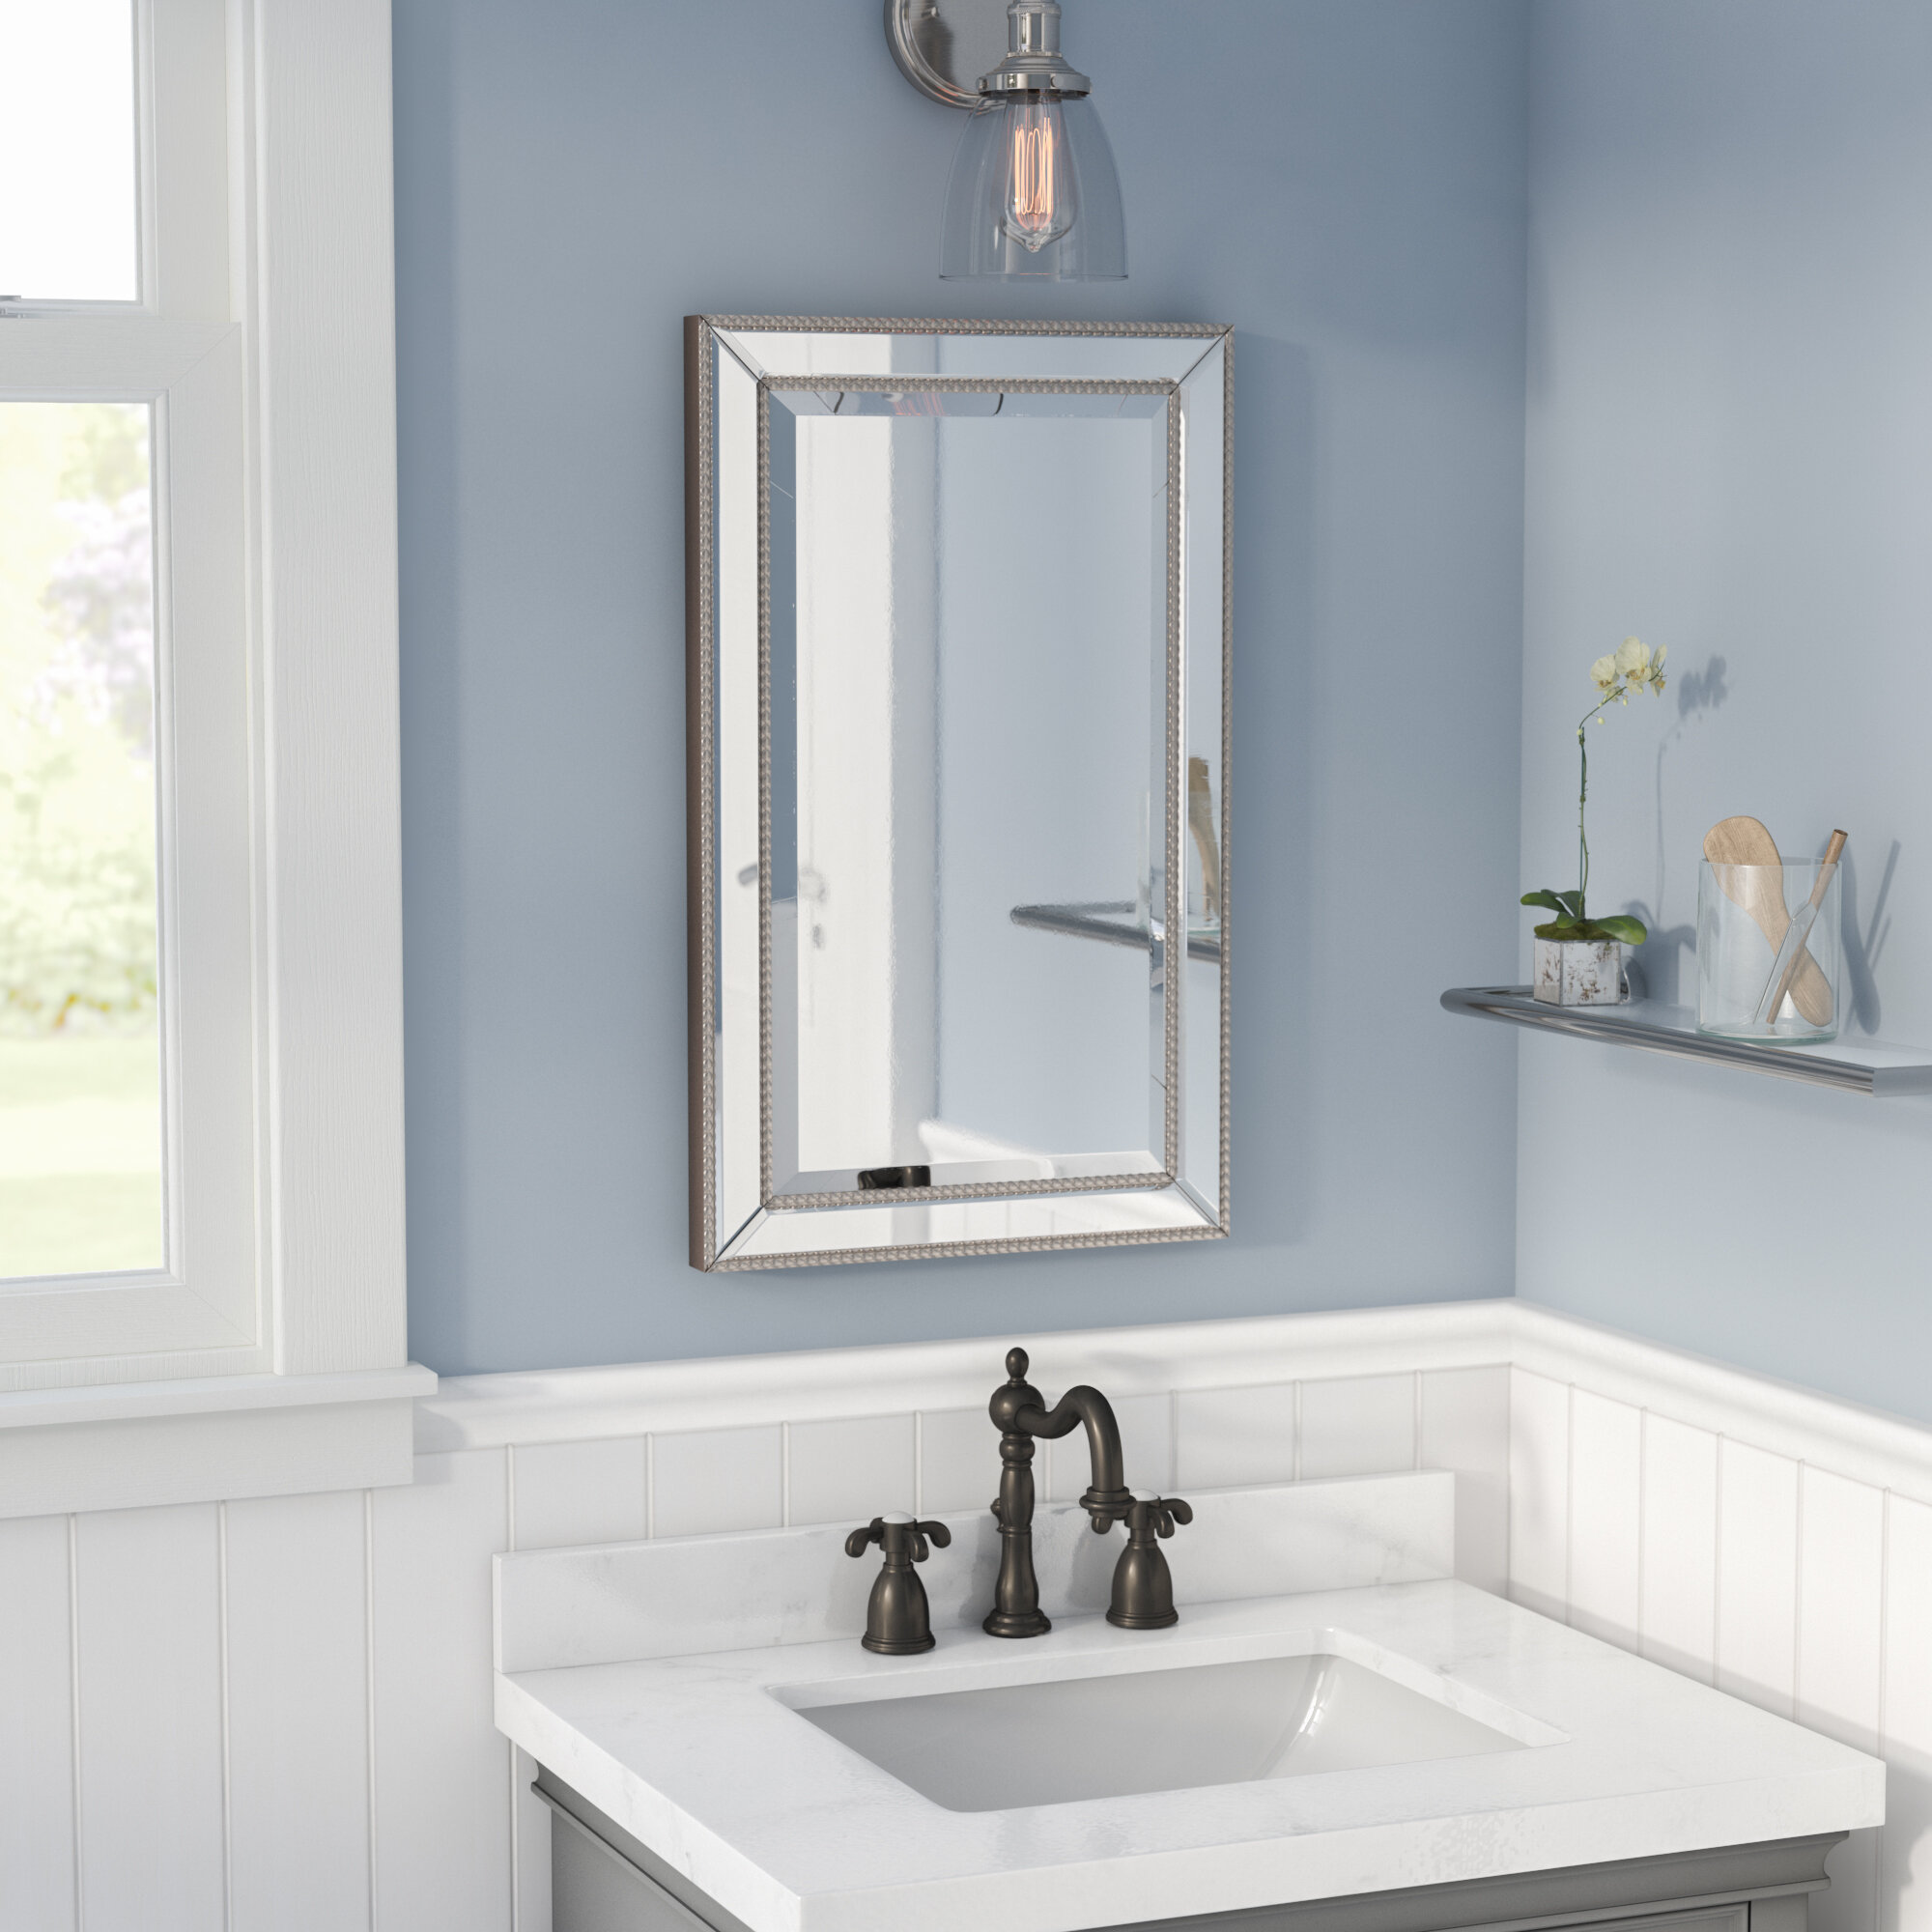 cabinet affordable cabinets the medicine mirror be one bathroom should recessed